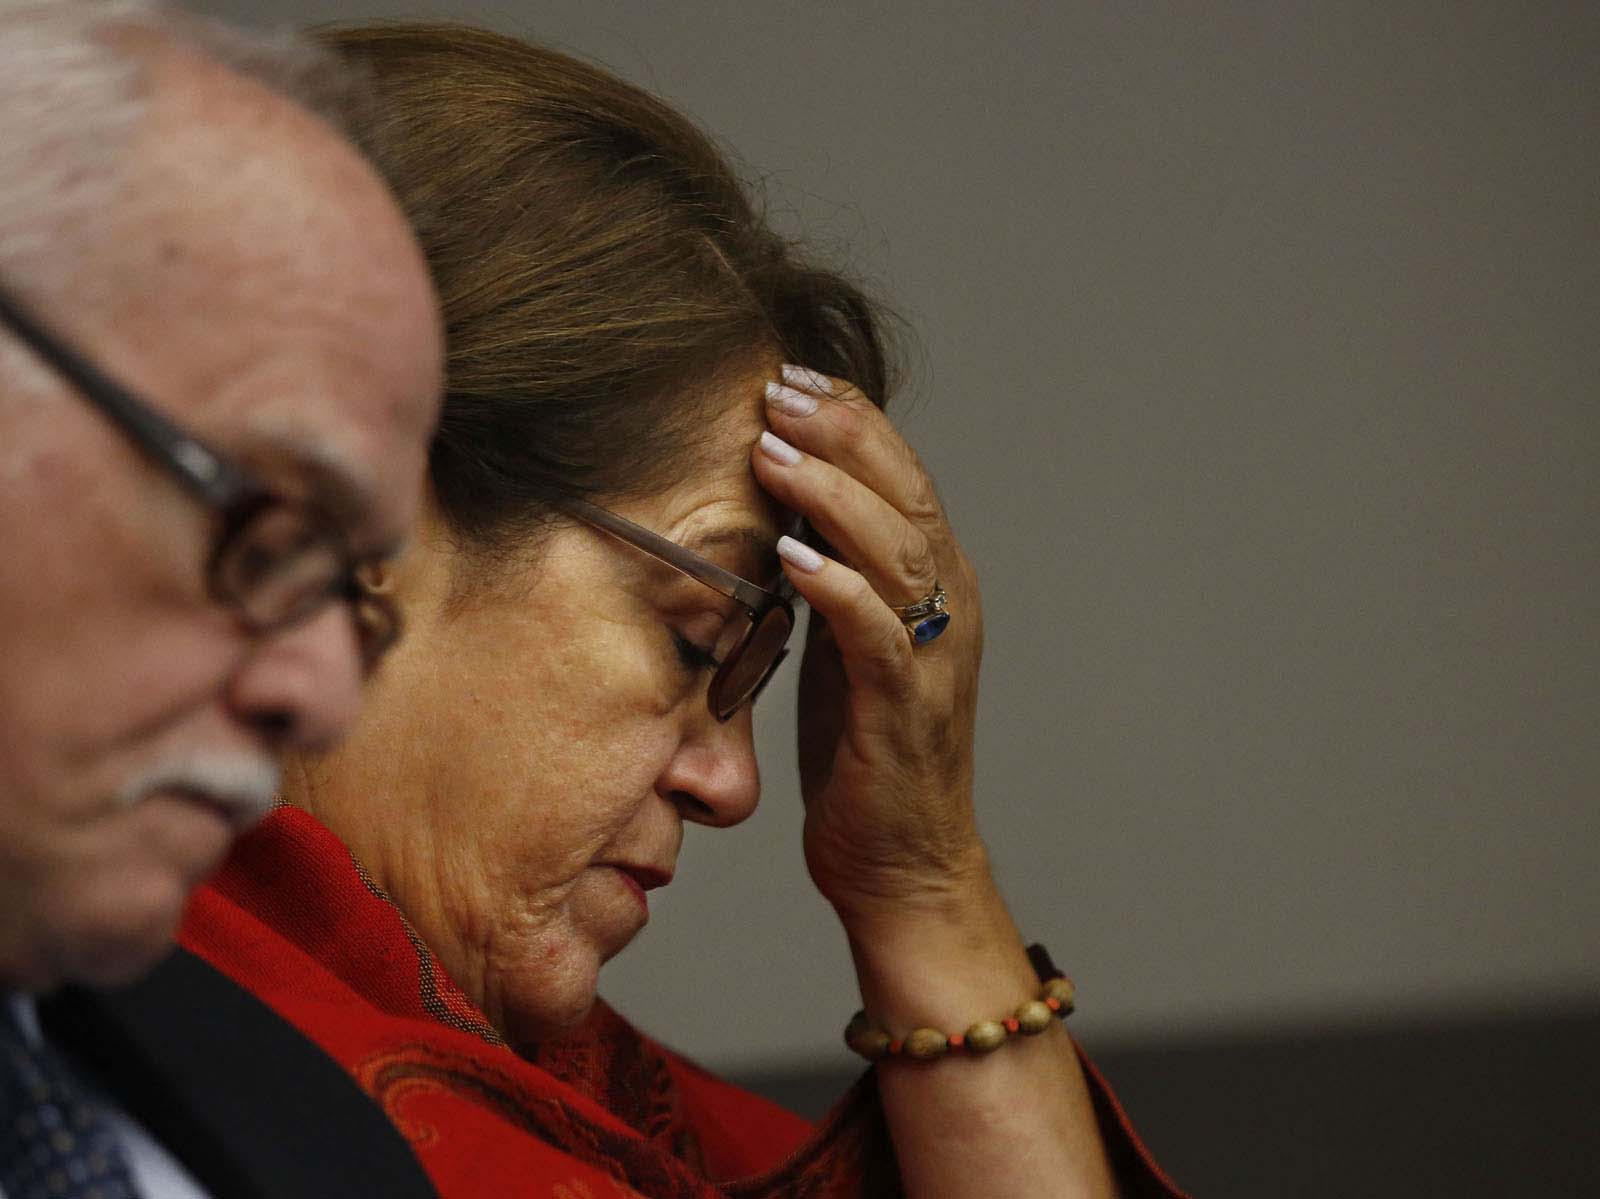 Azucena Duque, the mother of Pedro Bravo, listens to her son's interview with Gainesville Police Det. Randy Roberts during Bravo's murder trial in courtroom 1B of the Alachua County Criminal Justice Center Monday, August 11, 2014.  Bravo is accused of killing University of Florida student Christian Aguilar.  (Doug Finger/The Gainesville Sun/Pool)